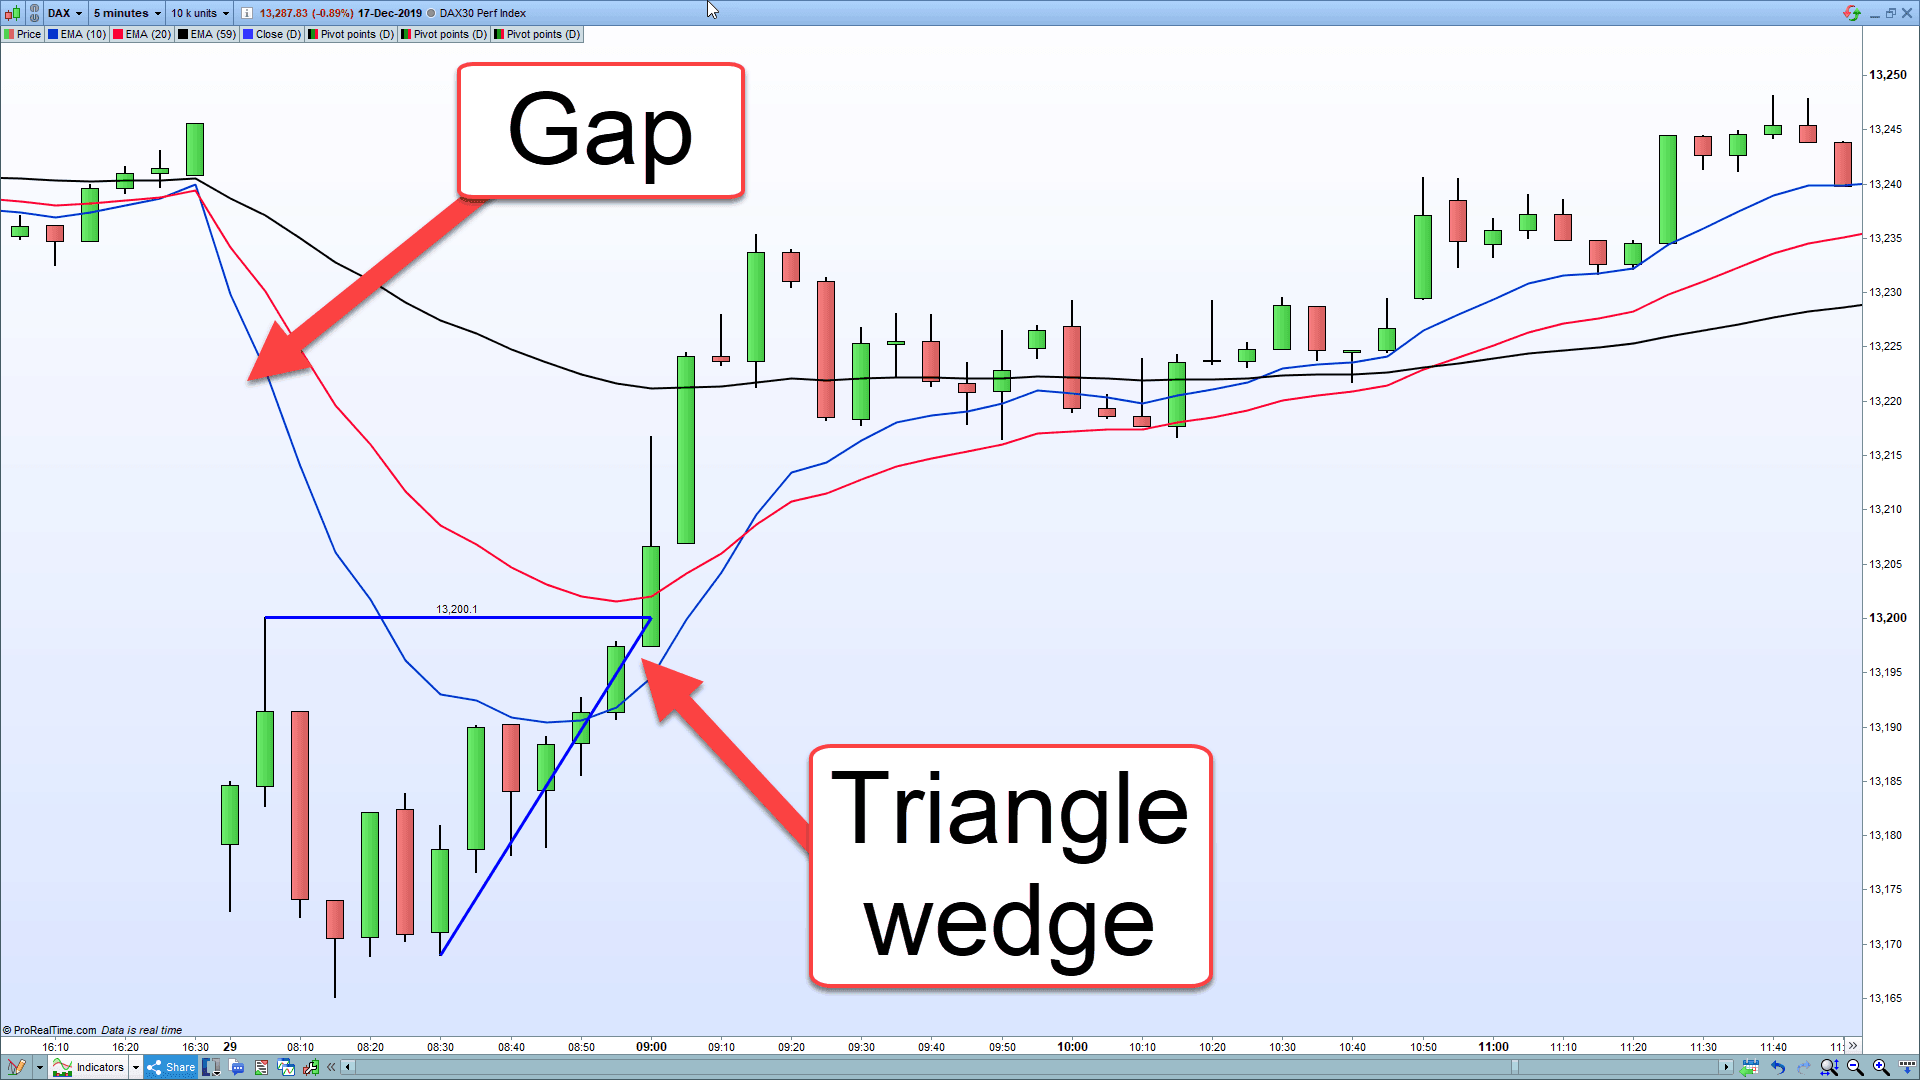 A DAX gap showing a breakout trading strategy allowing us to trade the gap.